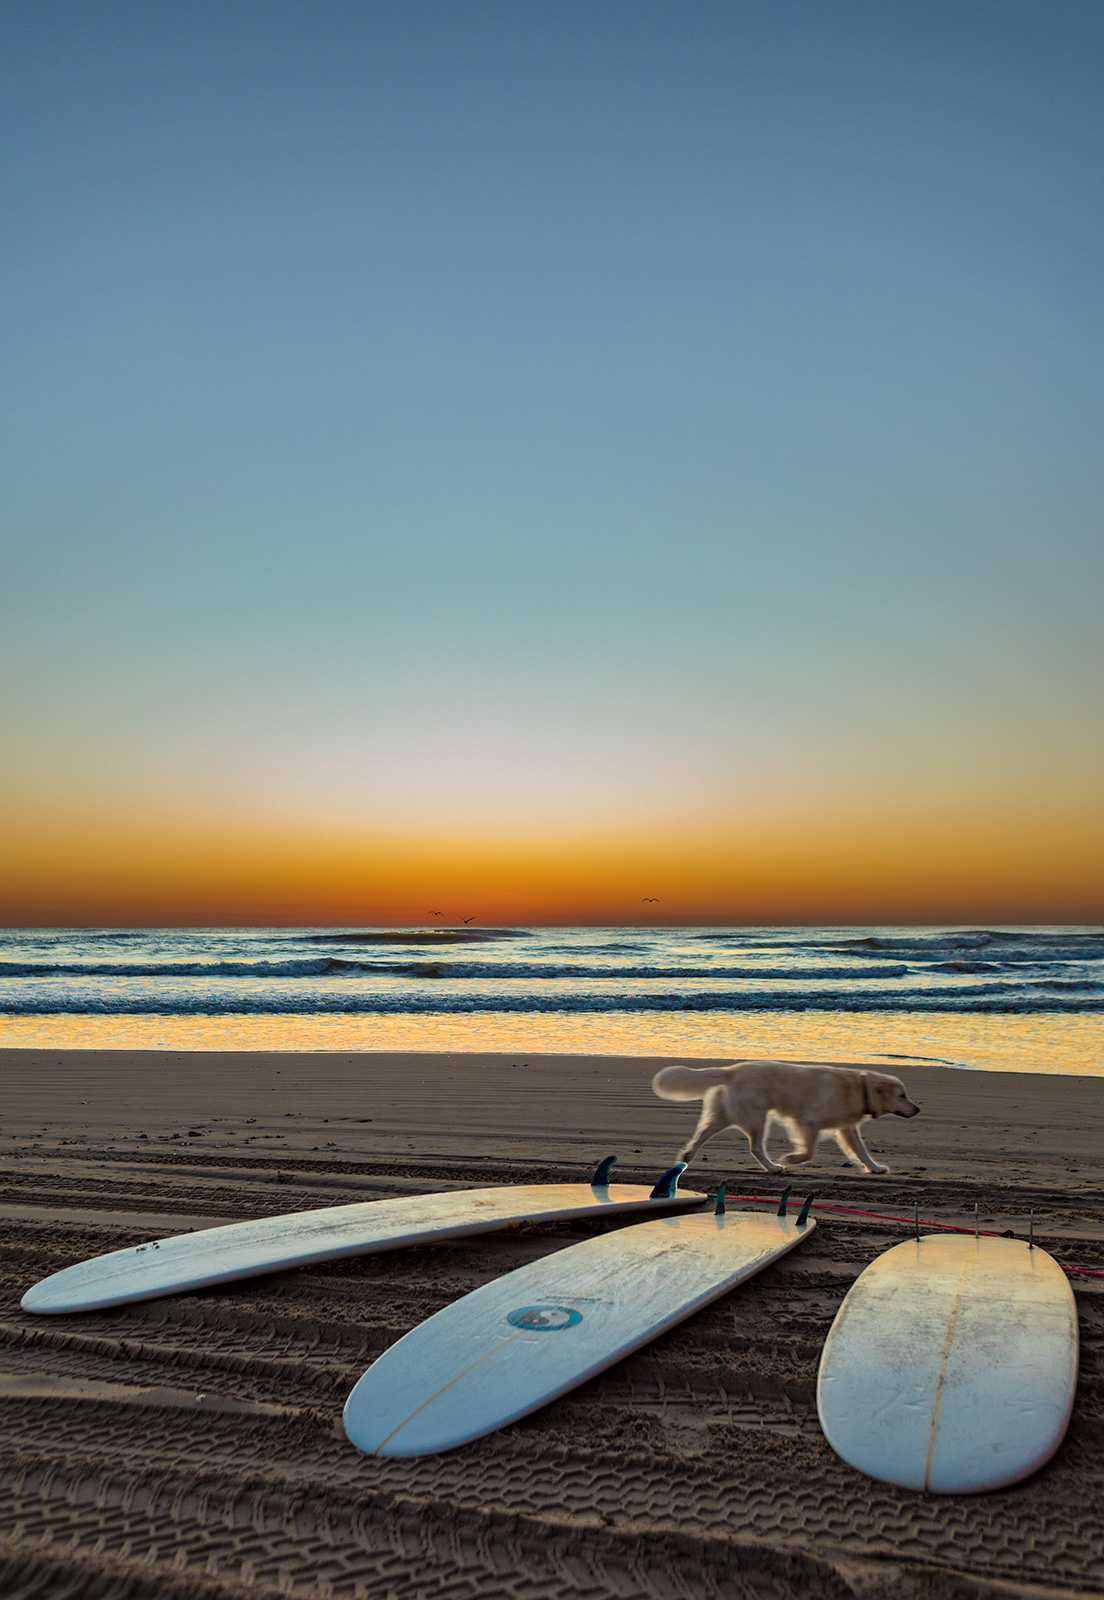 Surfboards with dog on the Texas beach at sunrise